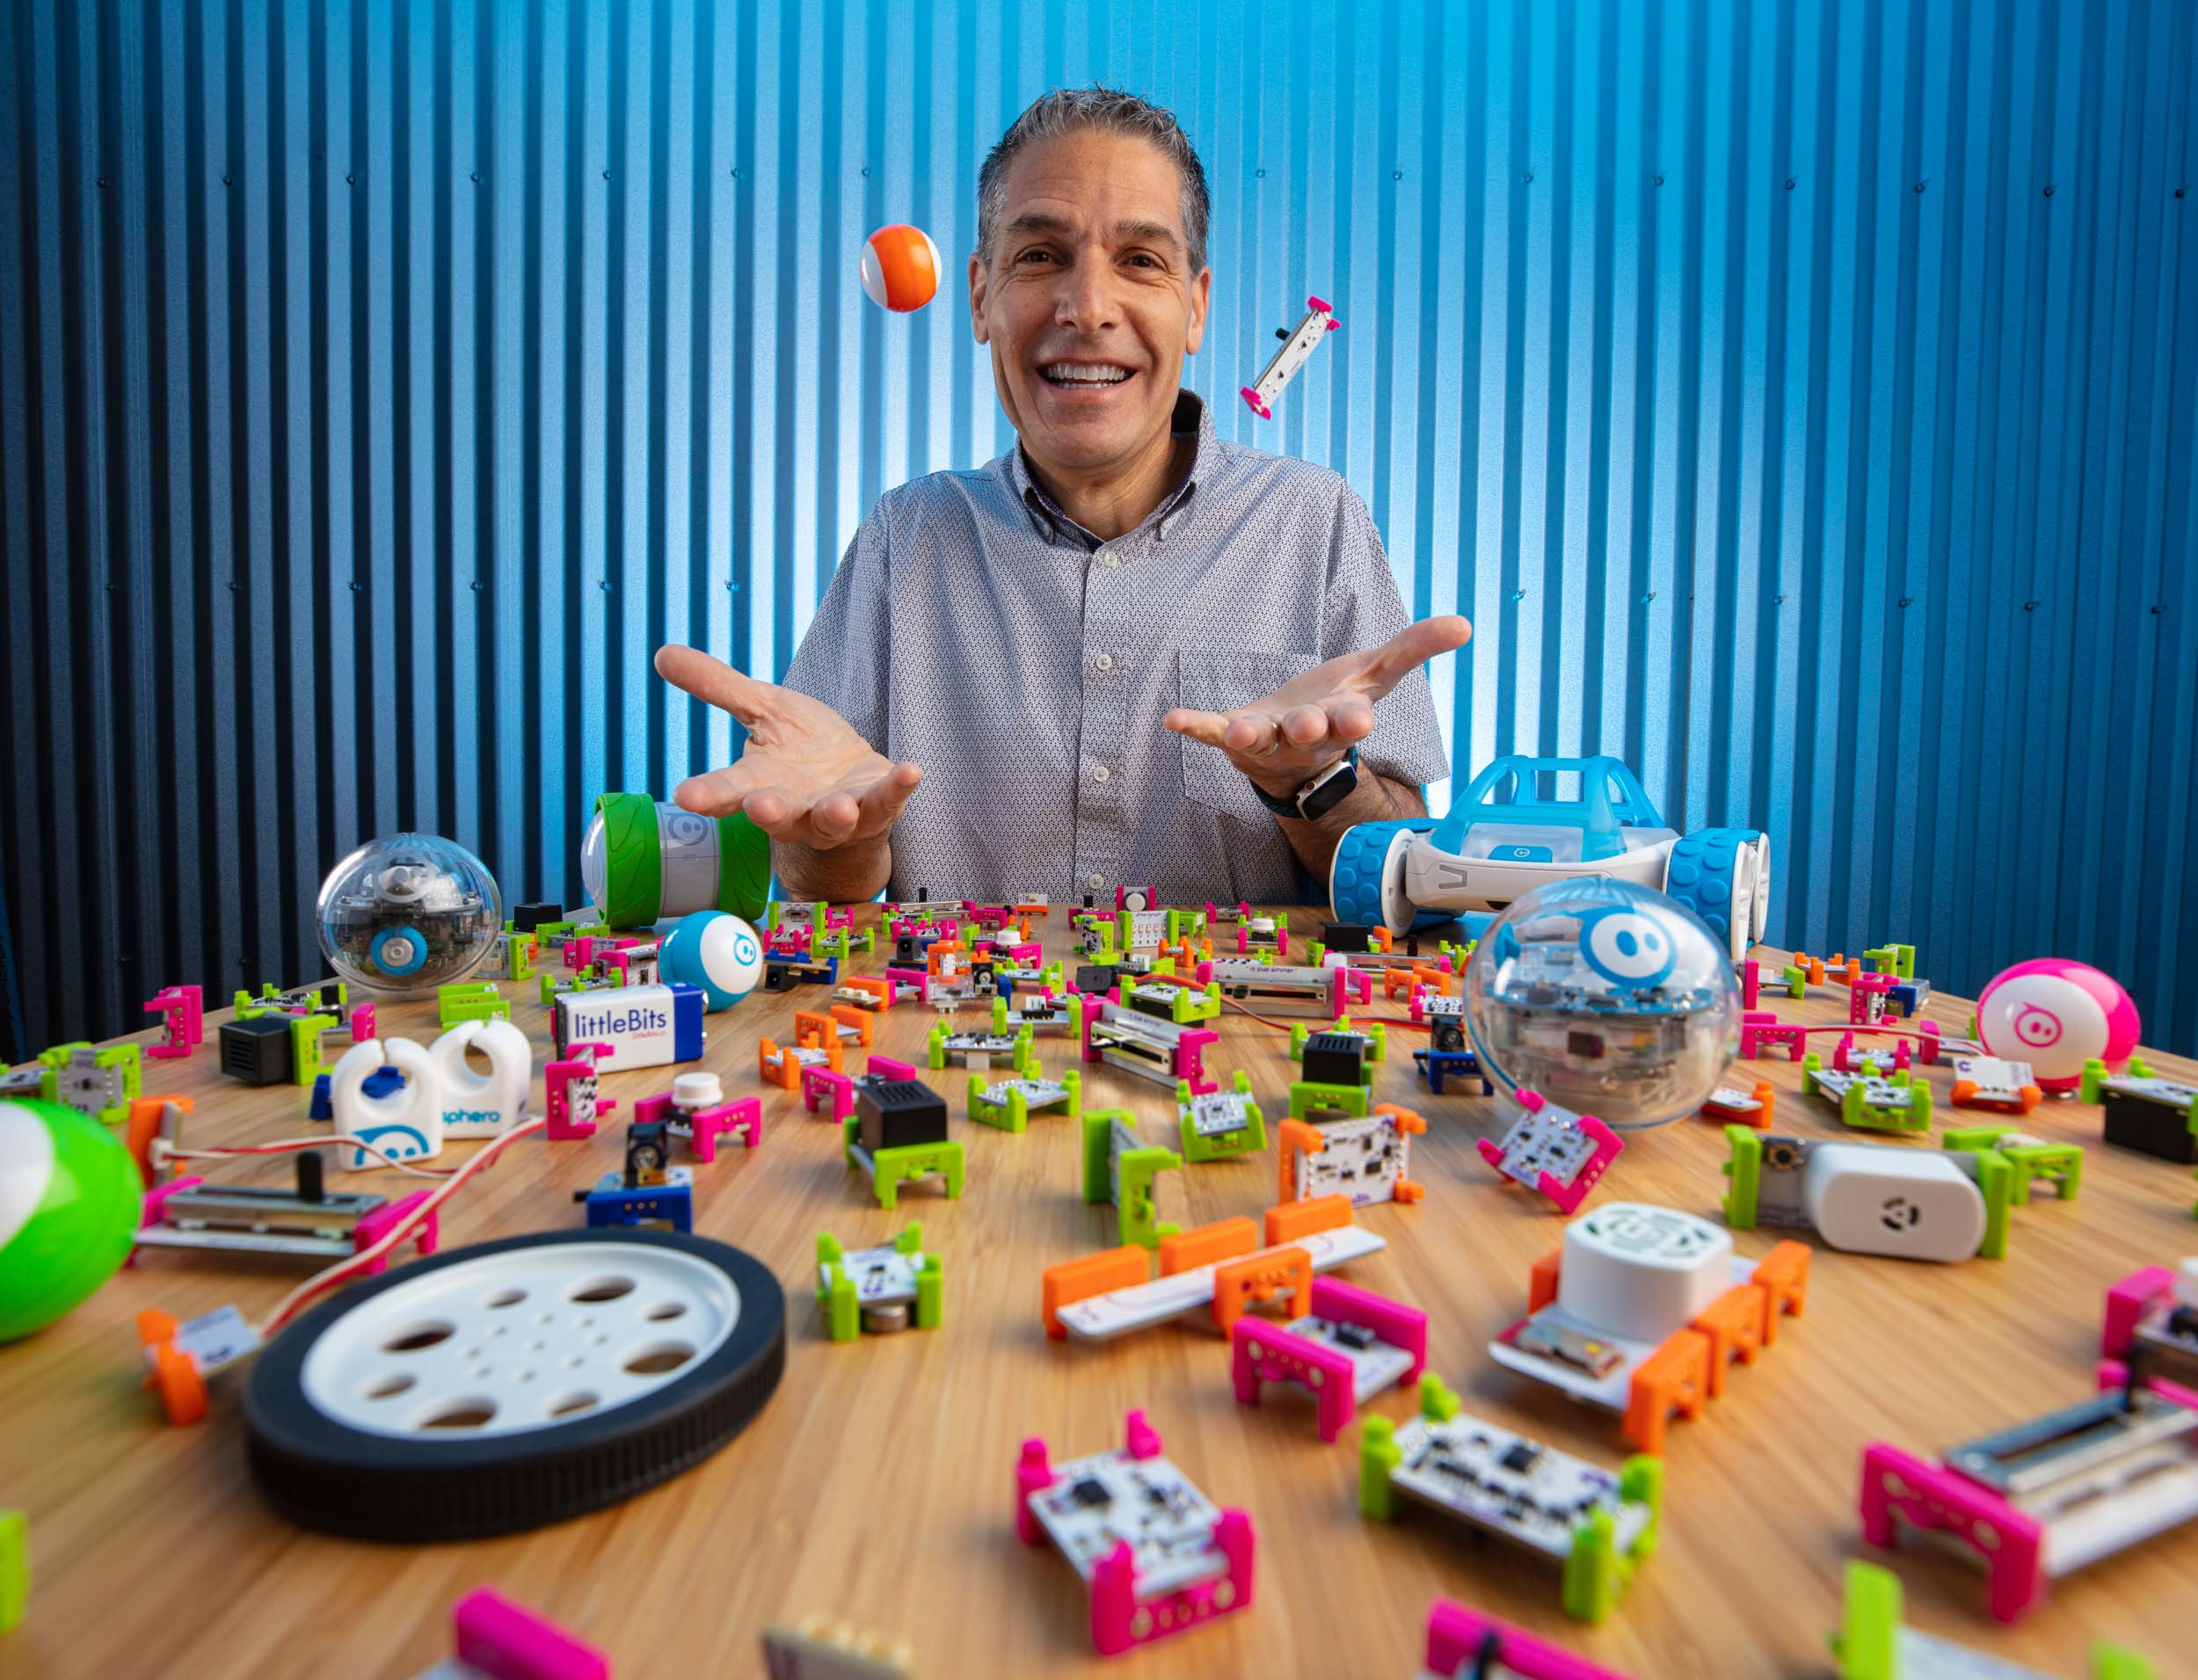 Sphero and LittleBits CEO Paul Berberian editorial environmental portrait in Boulder, Colorado.